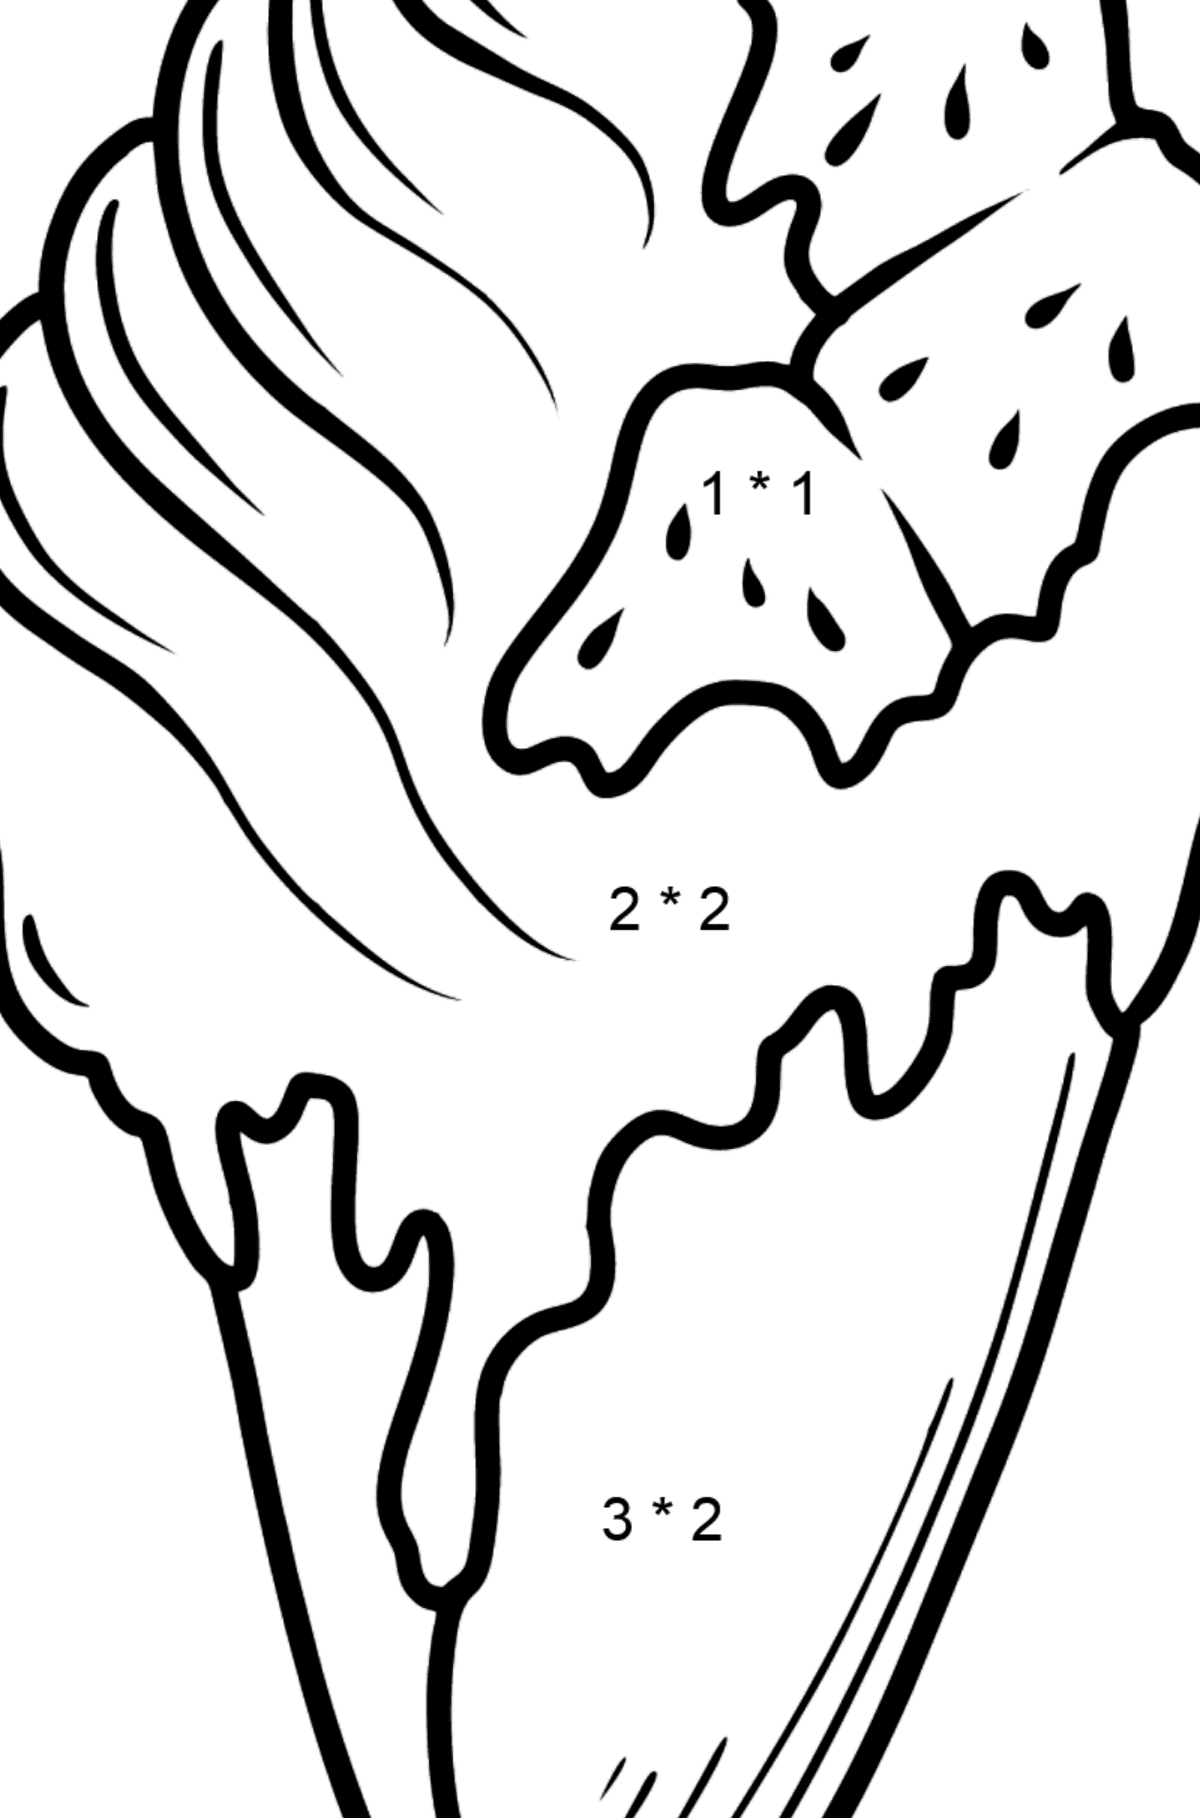 Banana Ice Cream and Jam Cone coloring page - Math Coloring - Multiplication for Kids